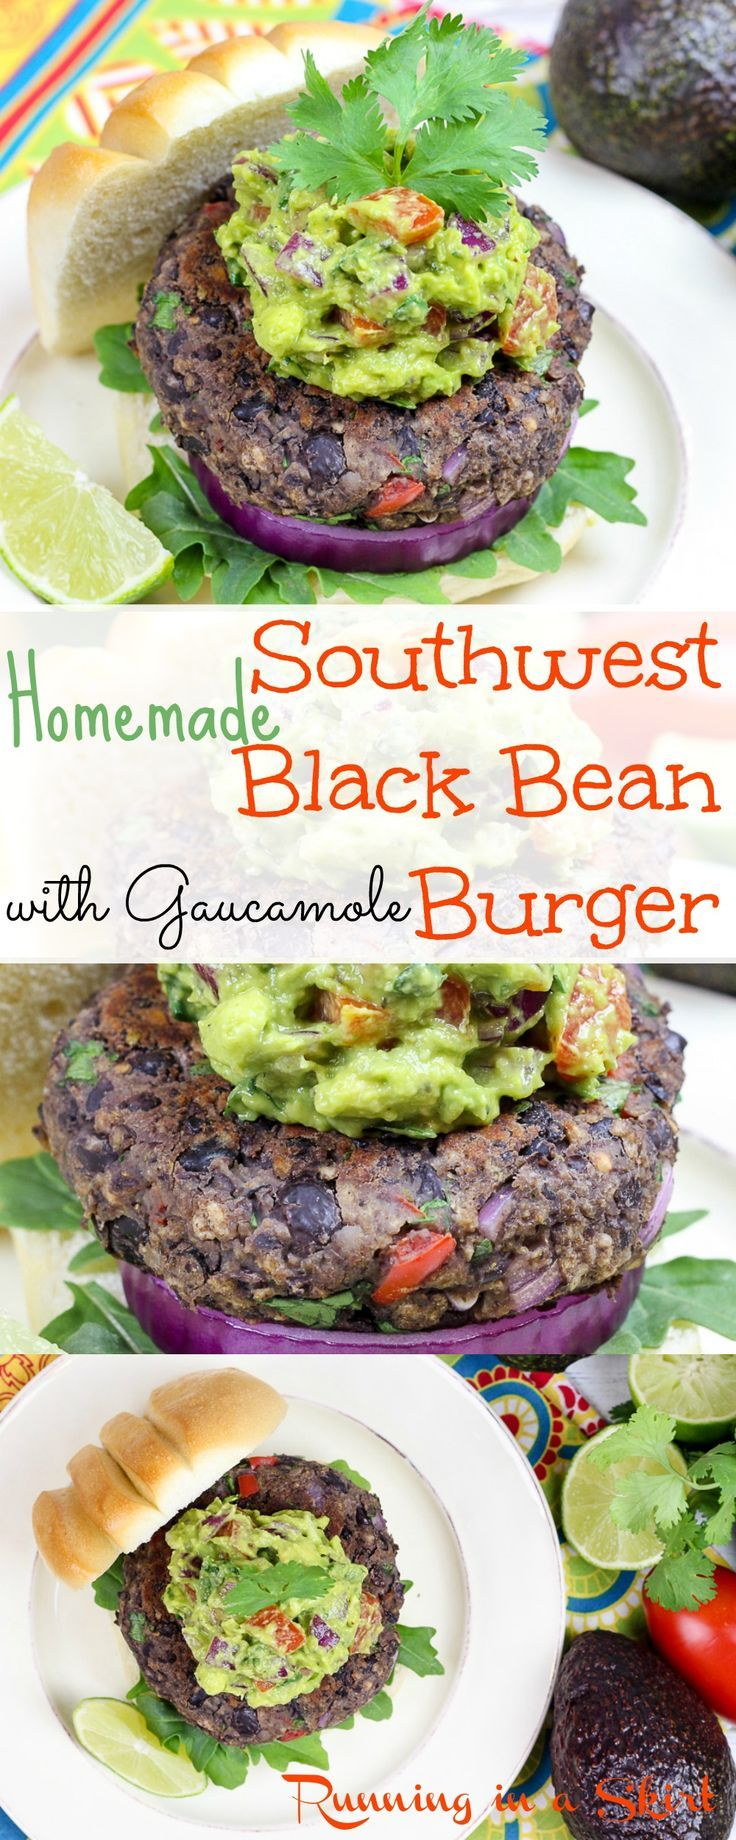 Southwest Black Bean Burgers